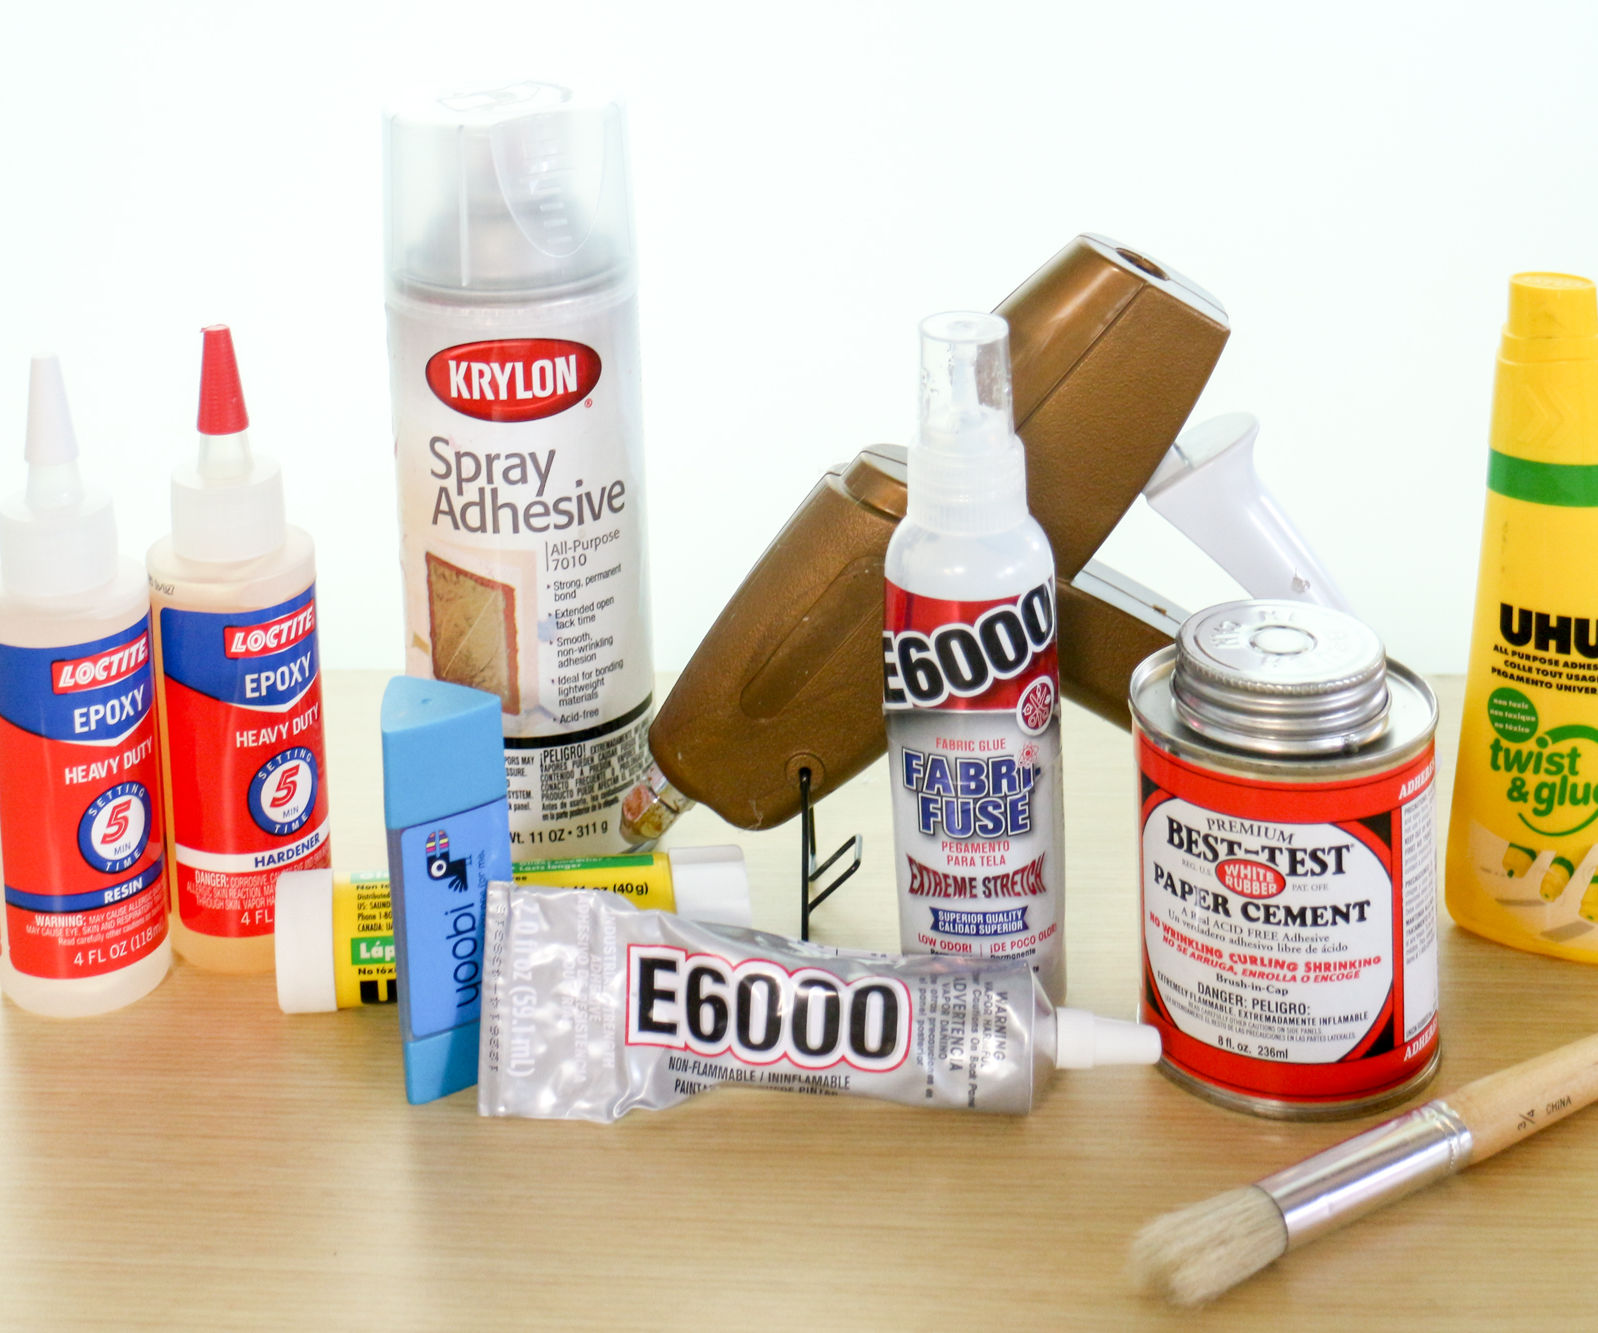 Getting Started with Glue